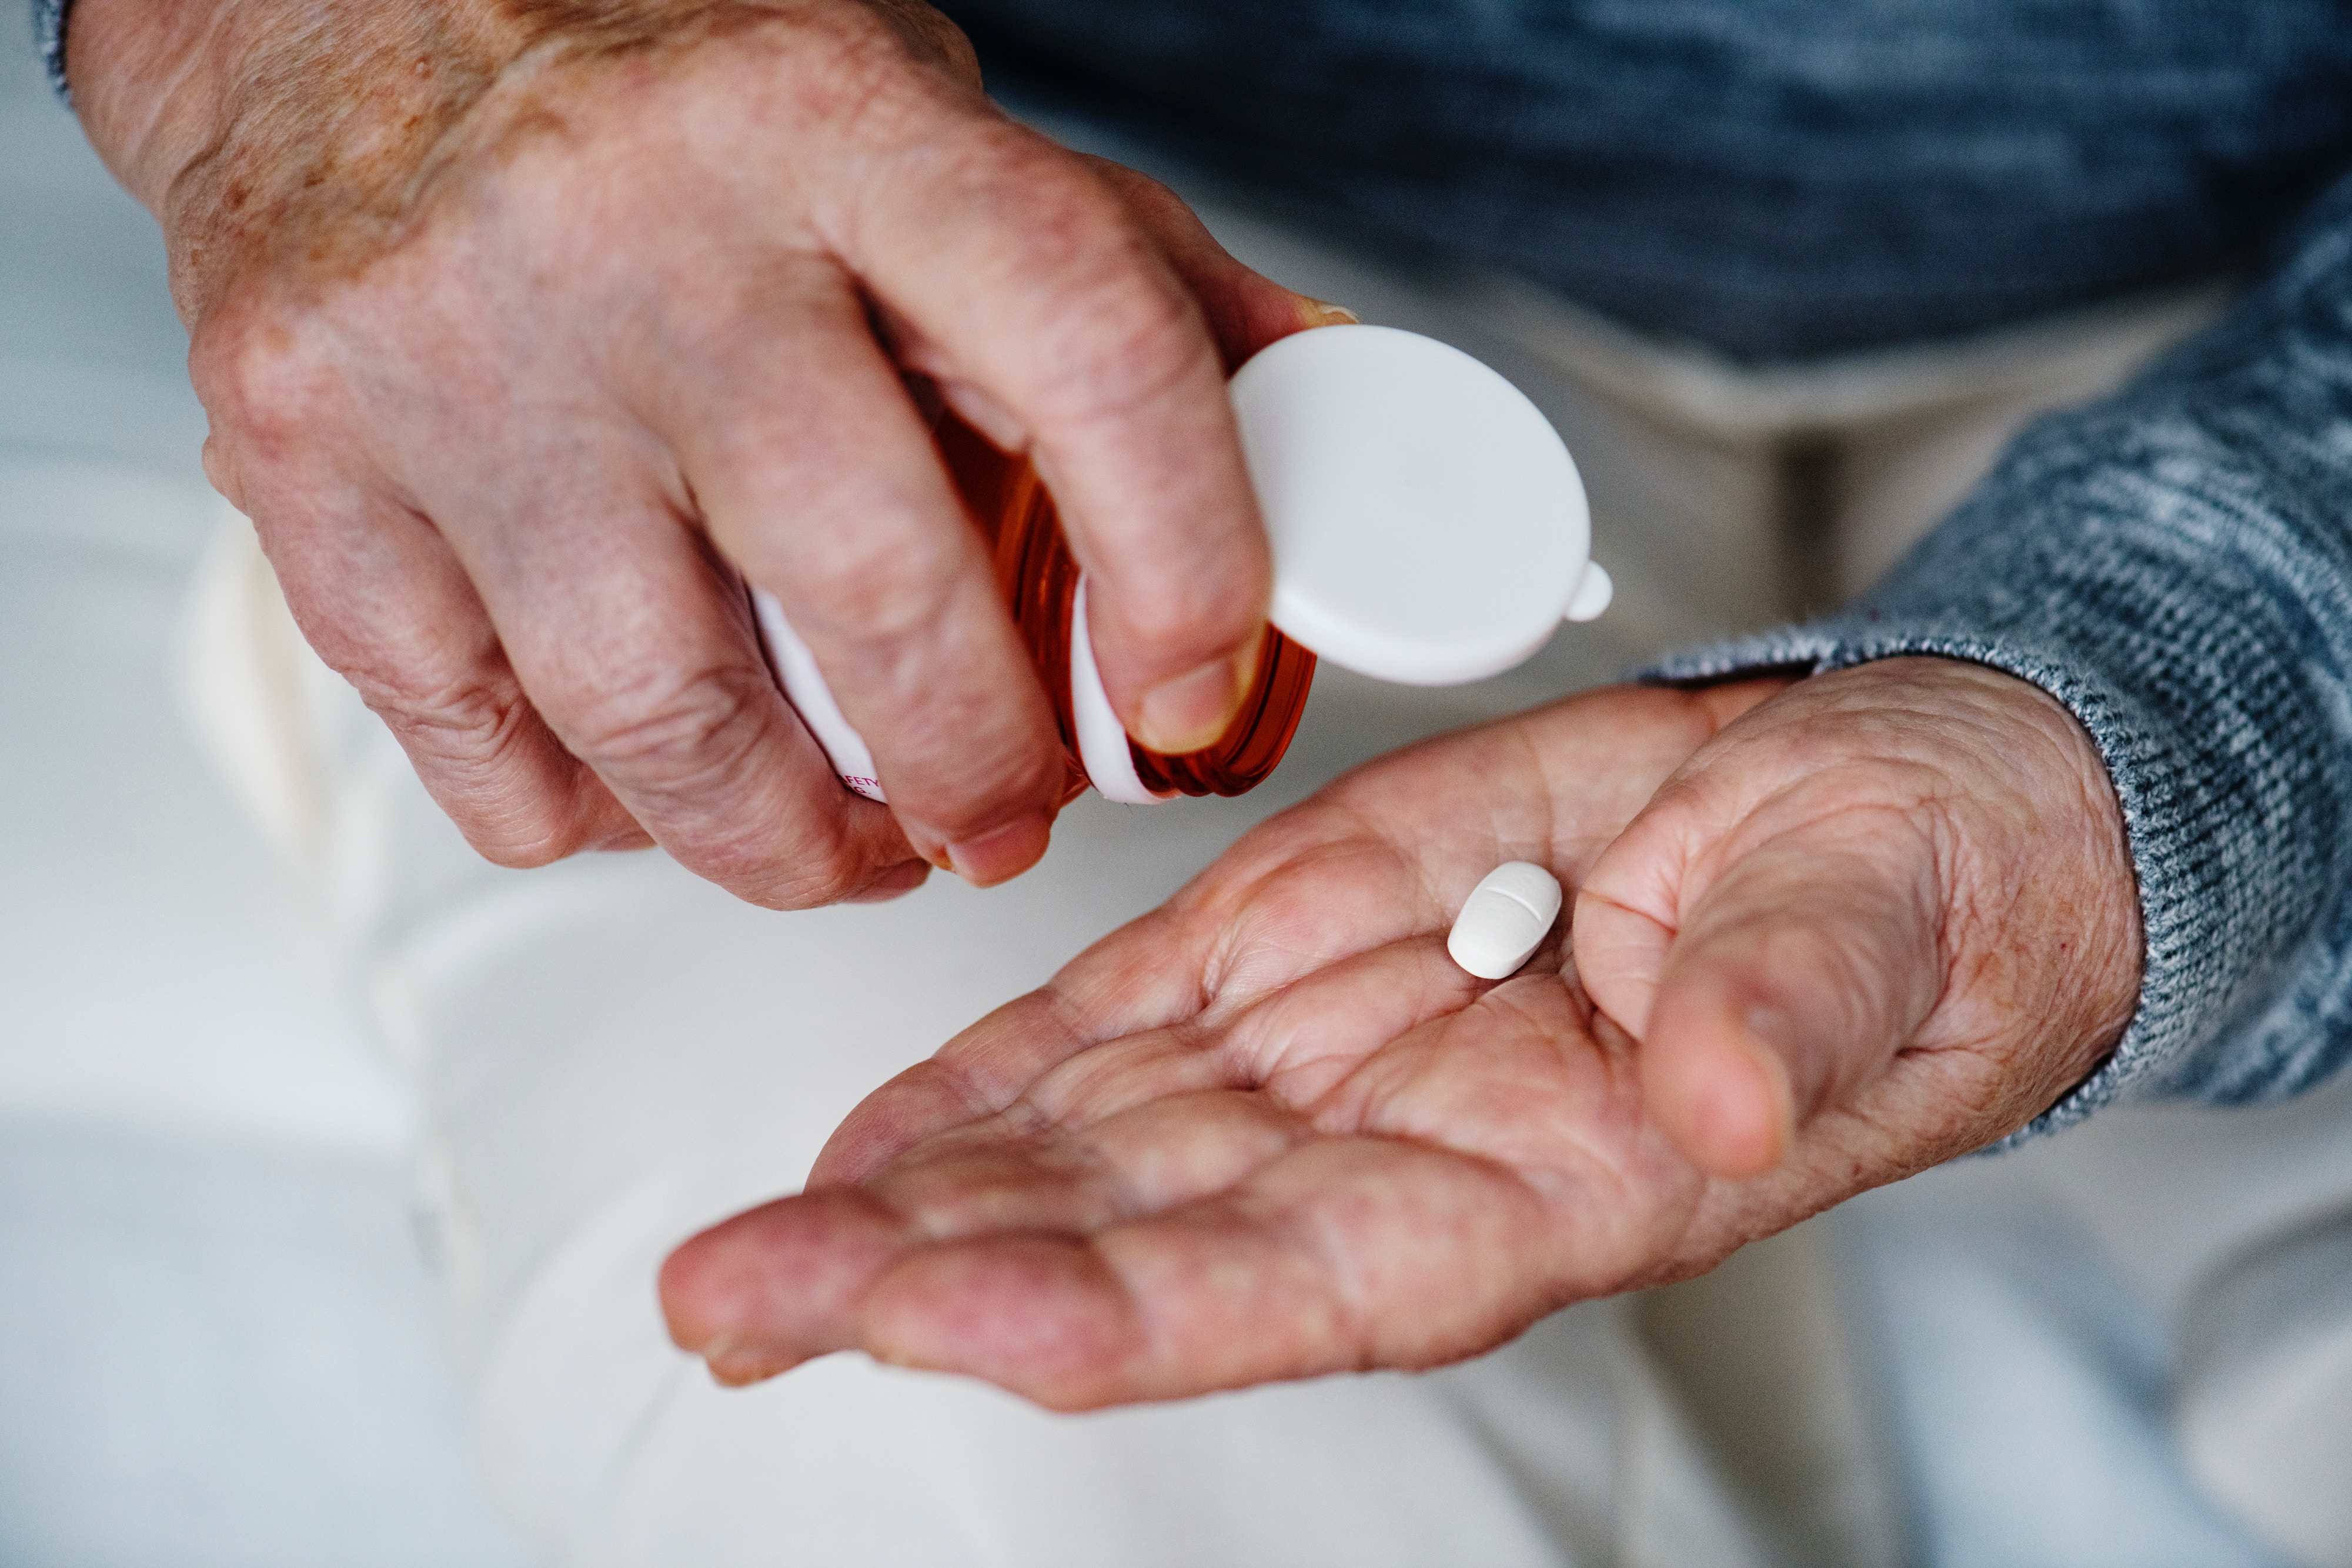 Middle aged hands pouring pill into hand from bottle.